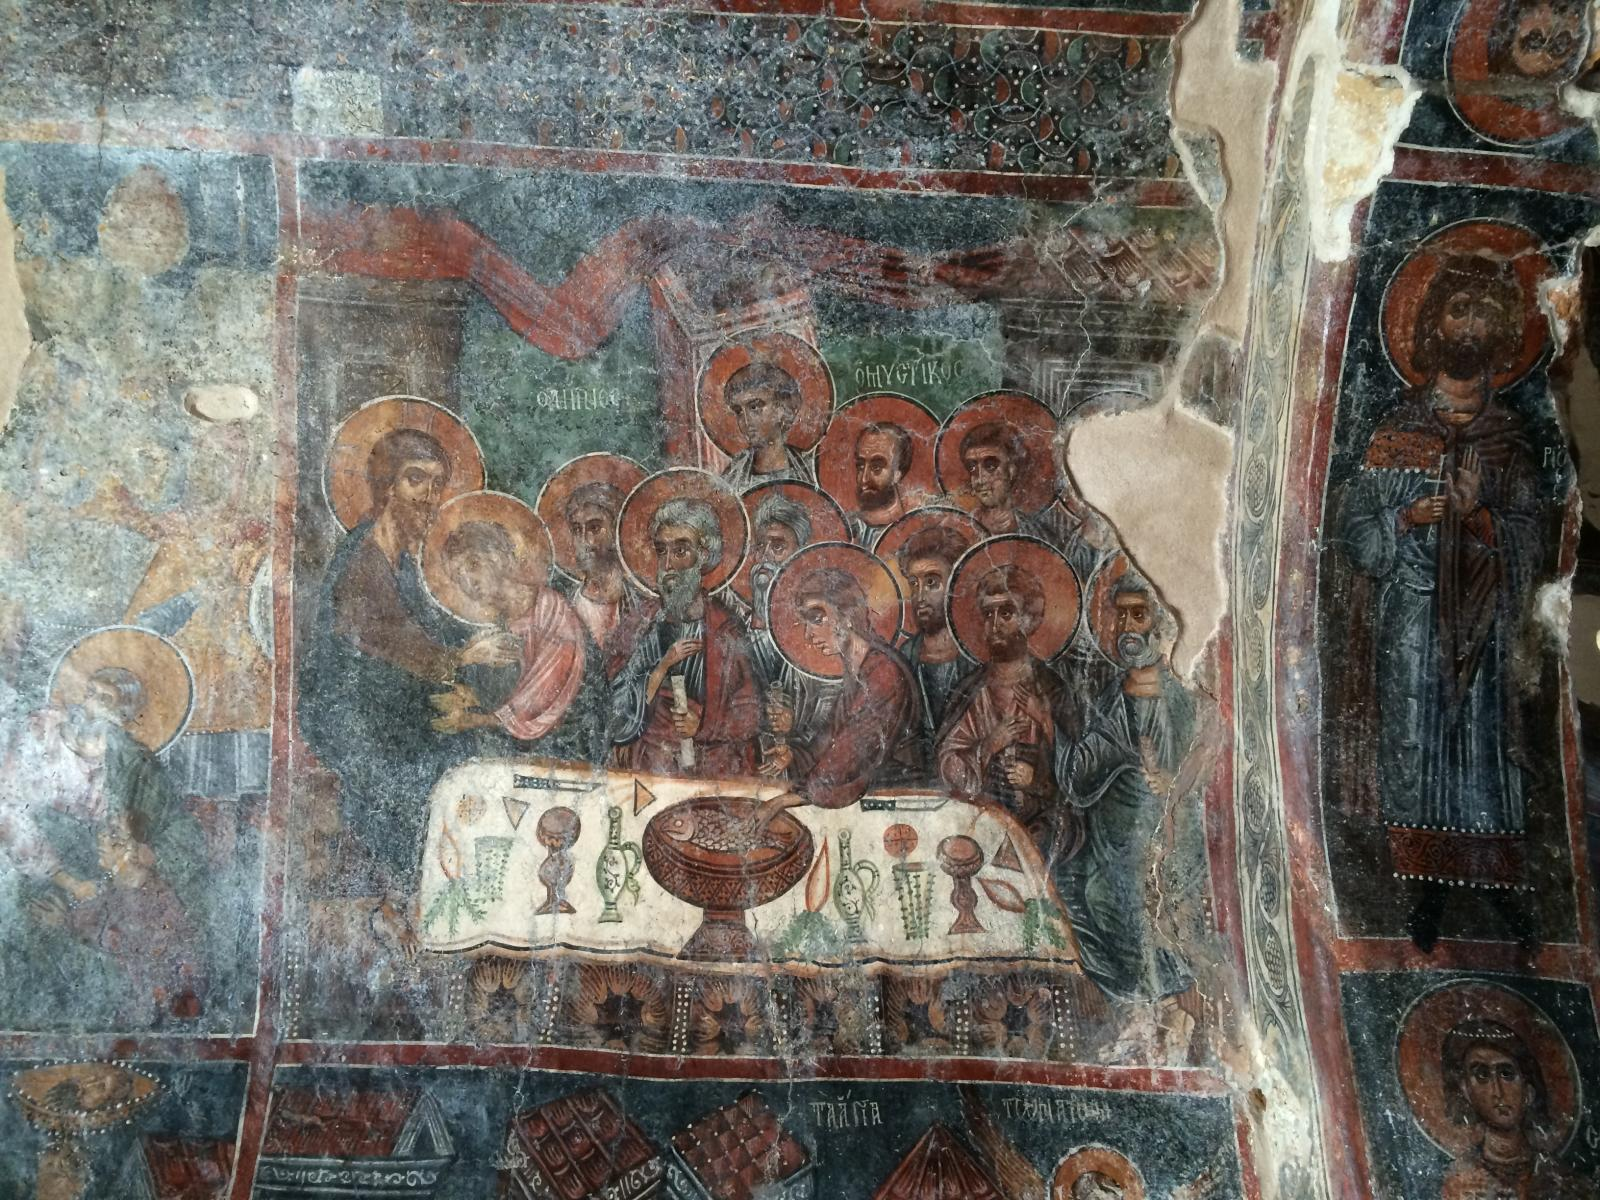 Panagia Kera, Kritsa - Travel Guide for Island Crete, Greece